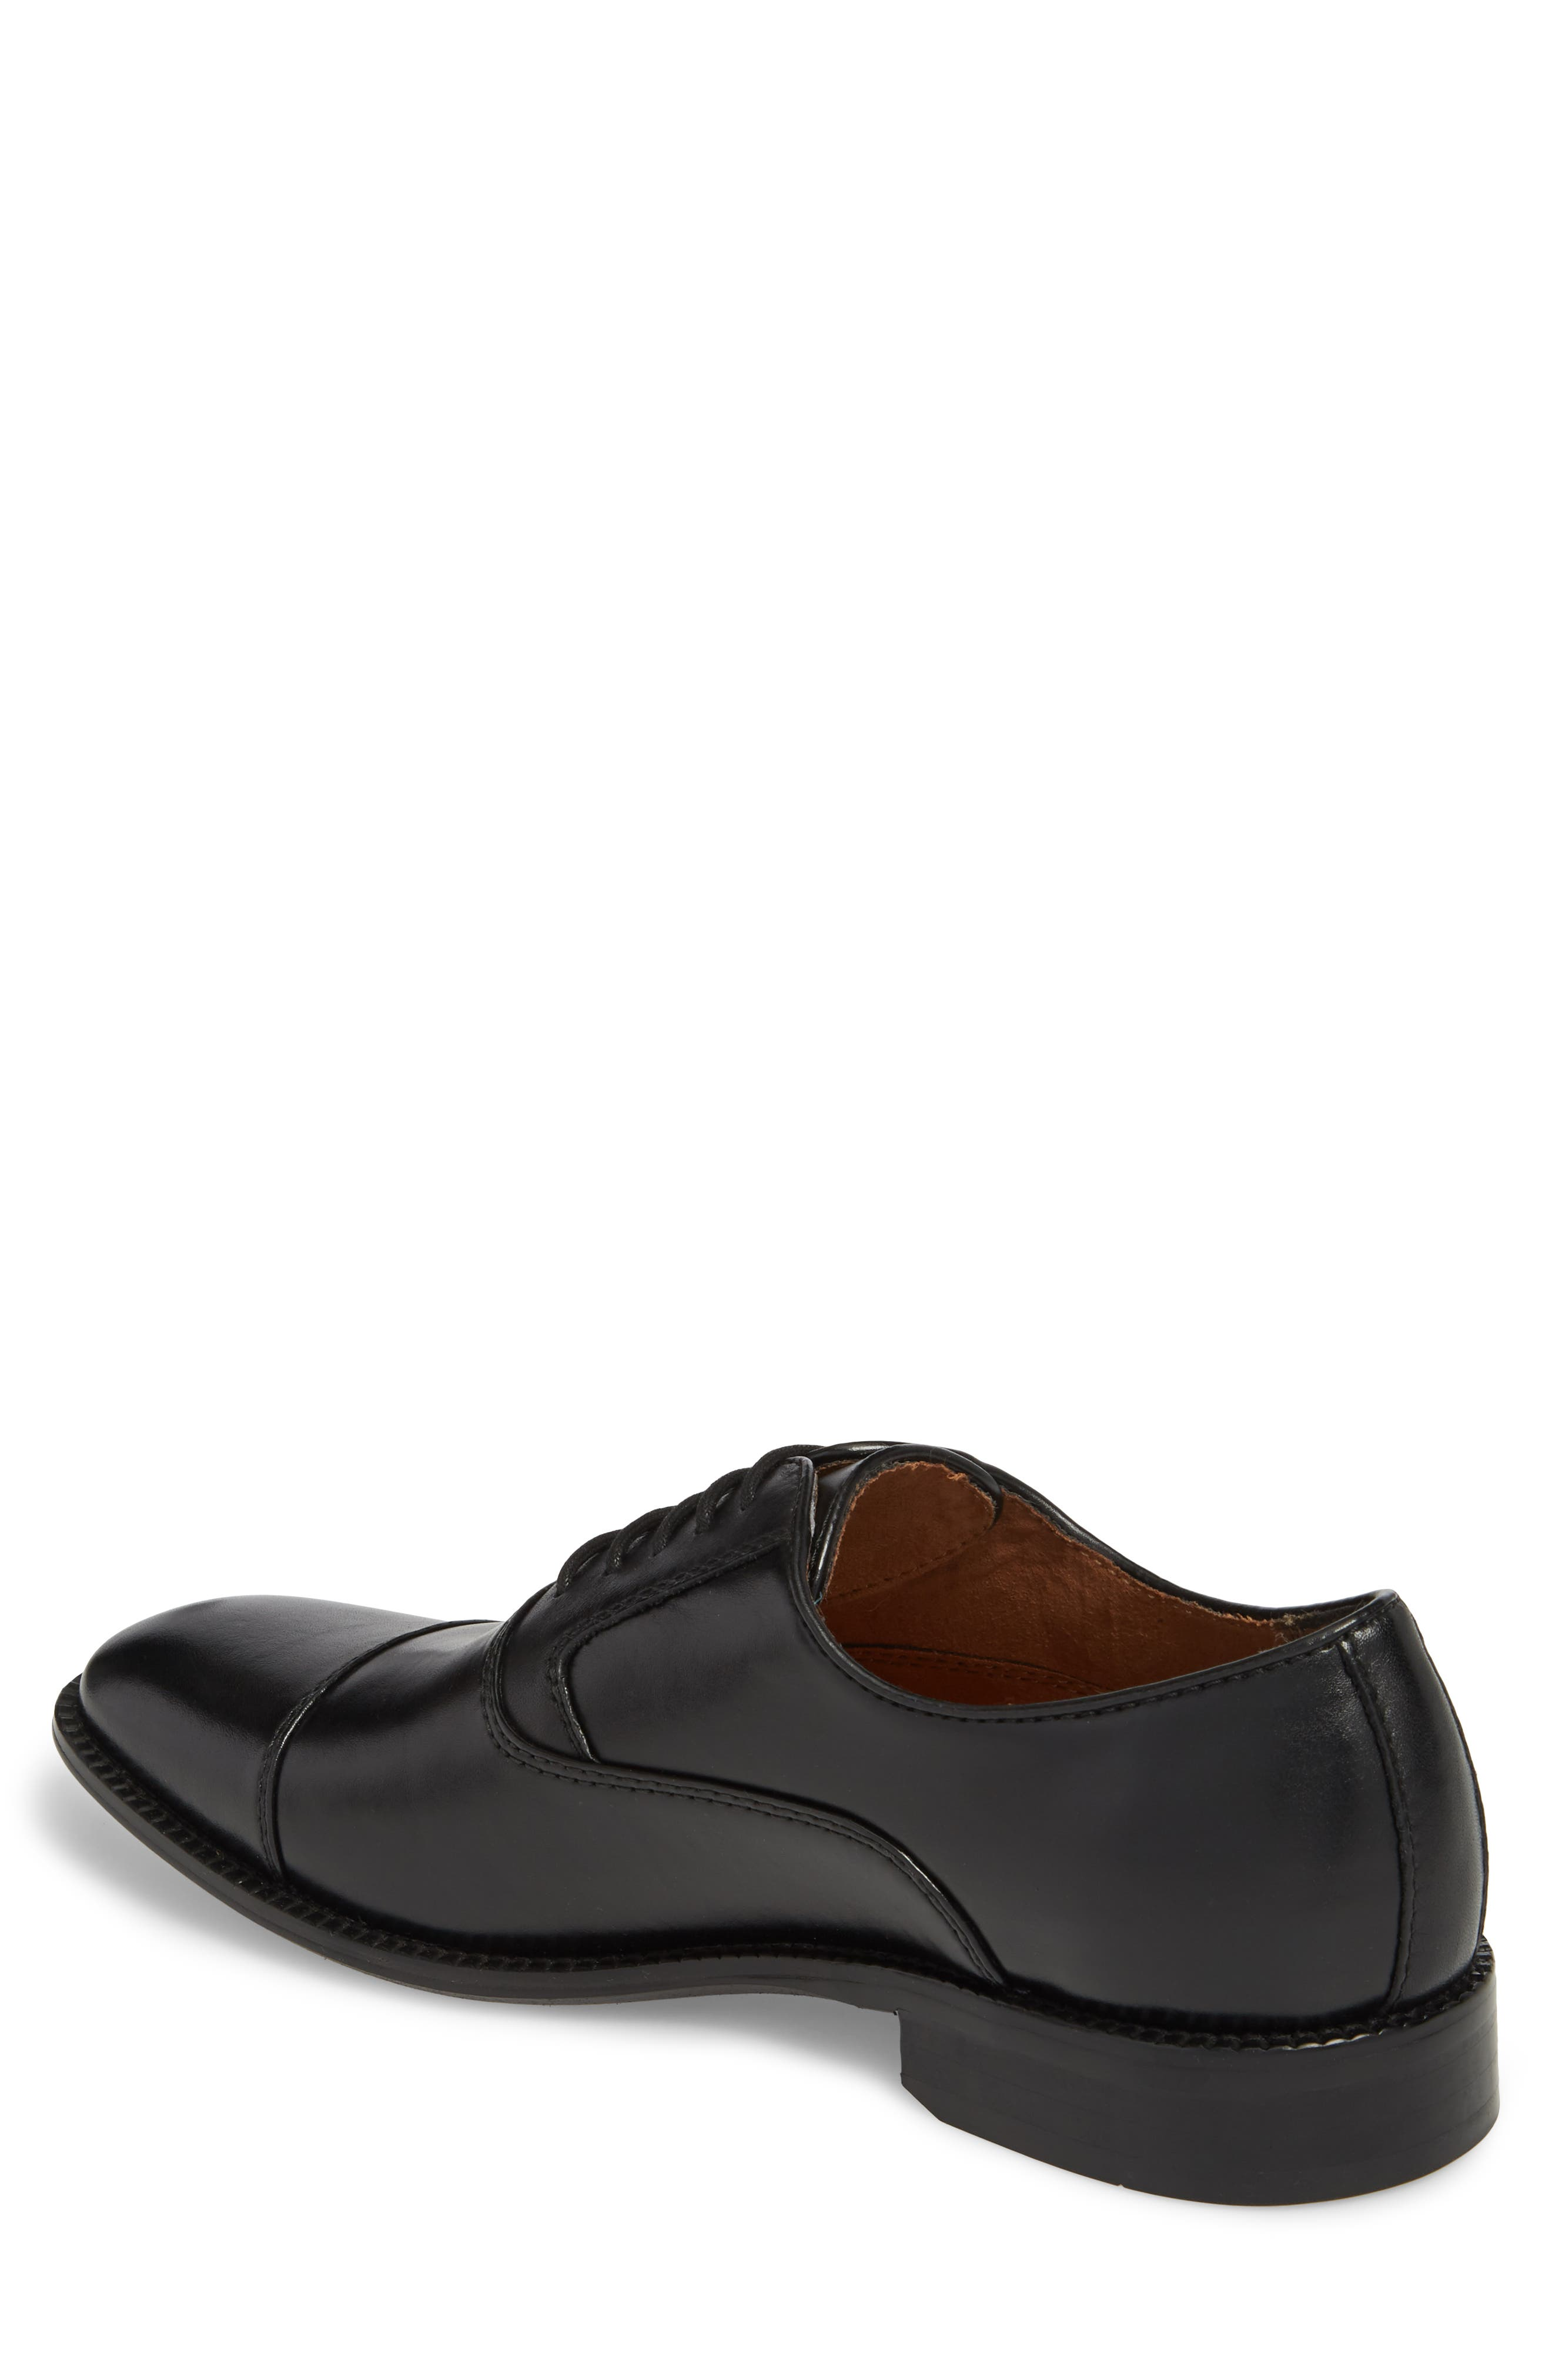 KENNETH COLE NEW YORK, Dice Cap Toe Oxford, Alternate thumbnail 2, color, BLACK LEATHER